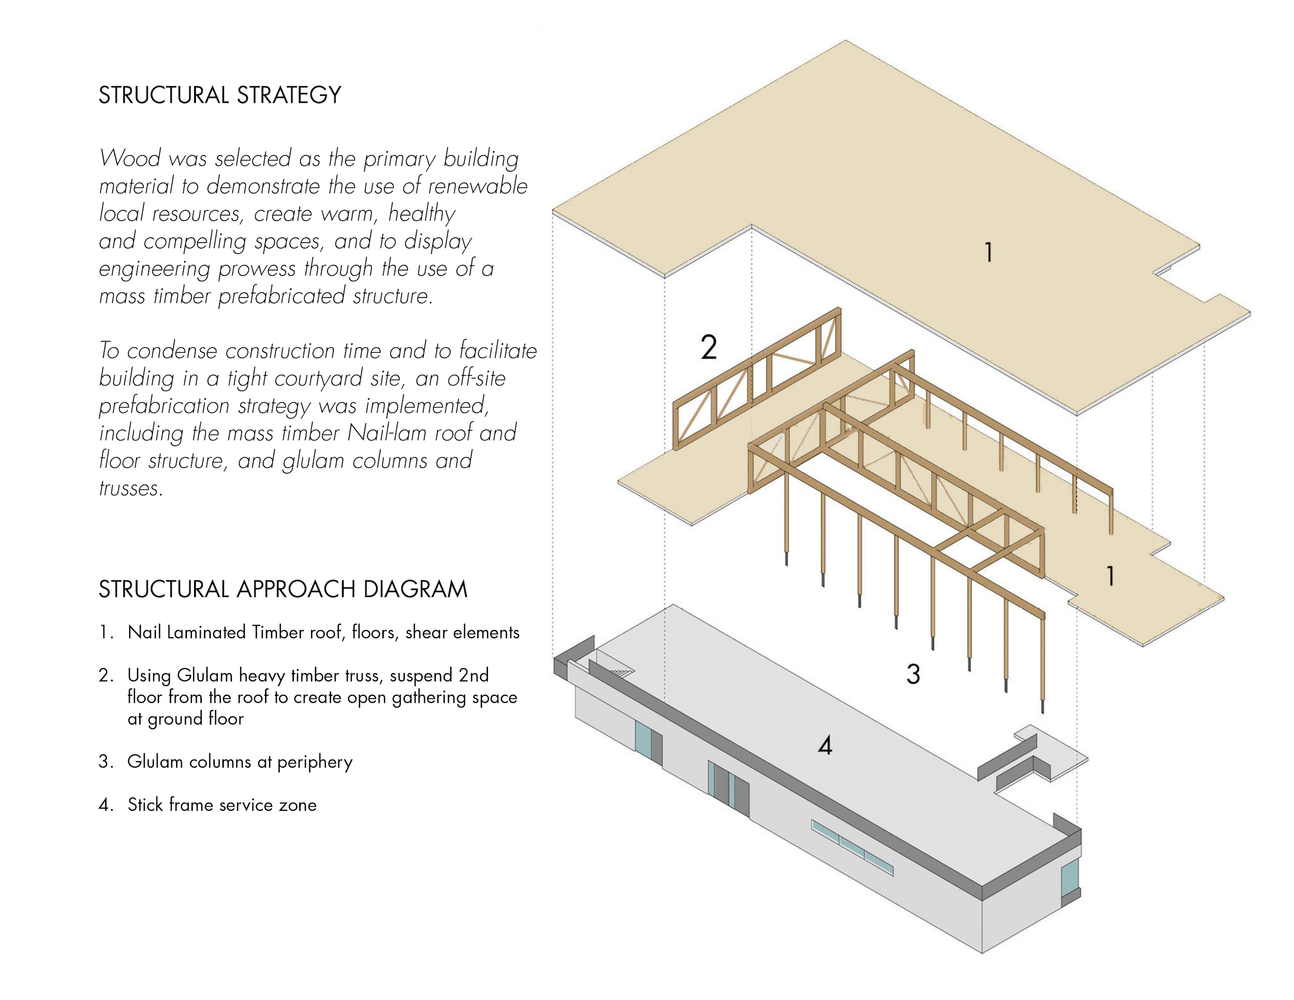 hight resolution of university of british columbia engineering student centre urban arts architecture structural diagram